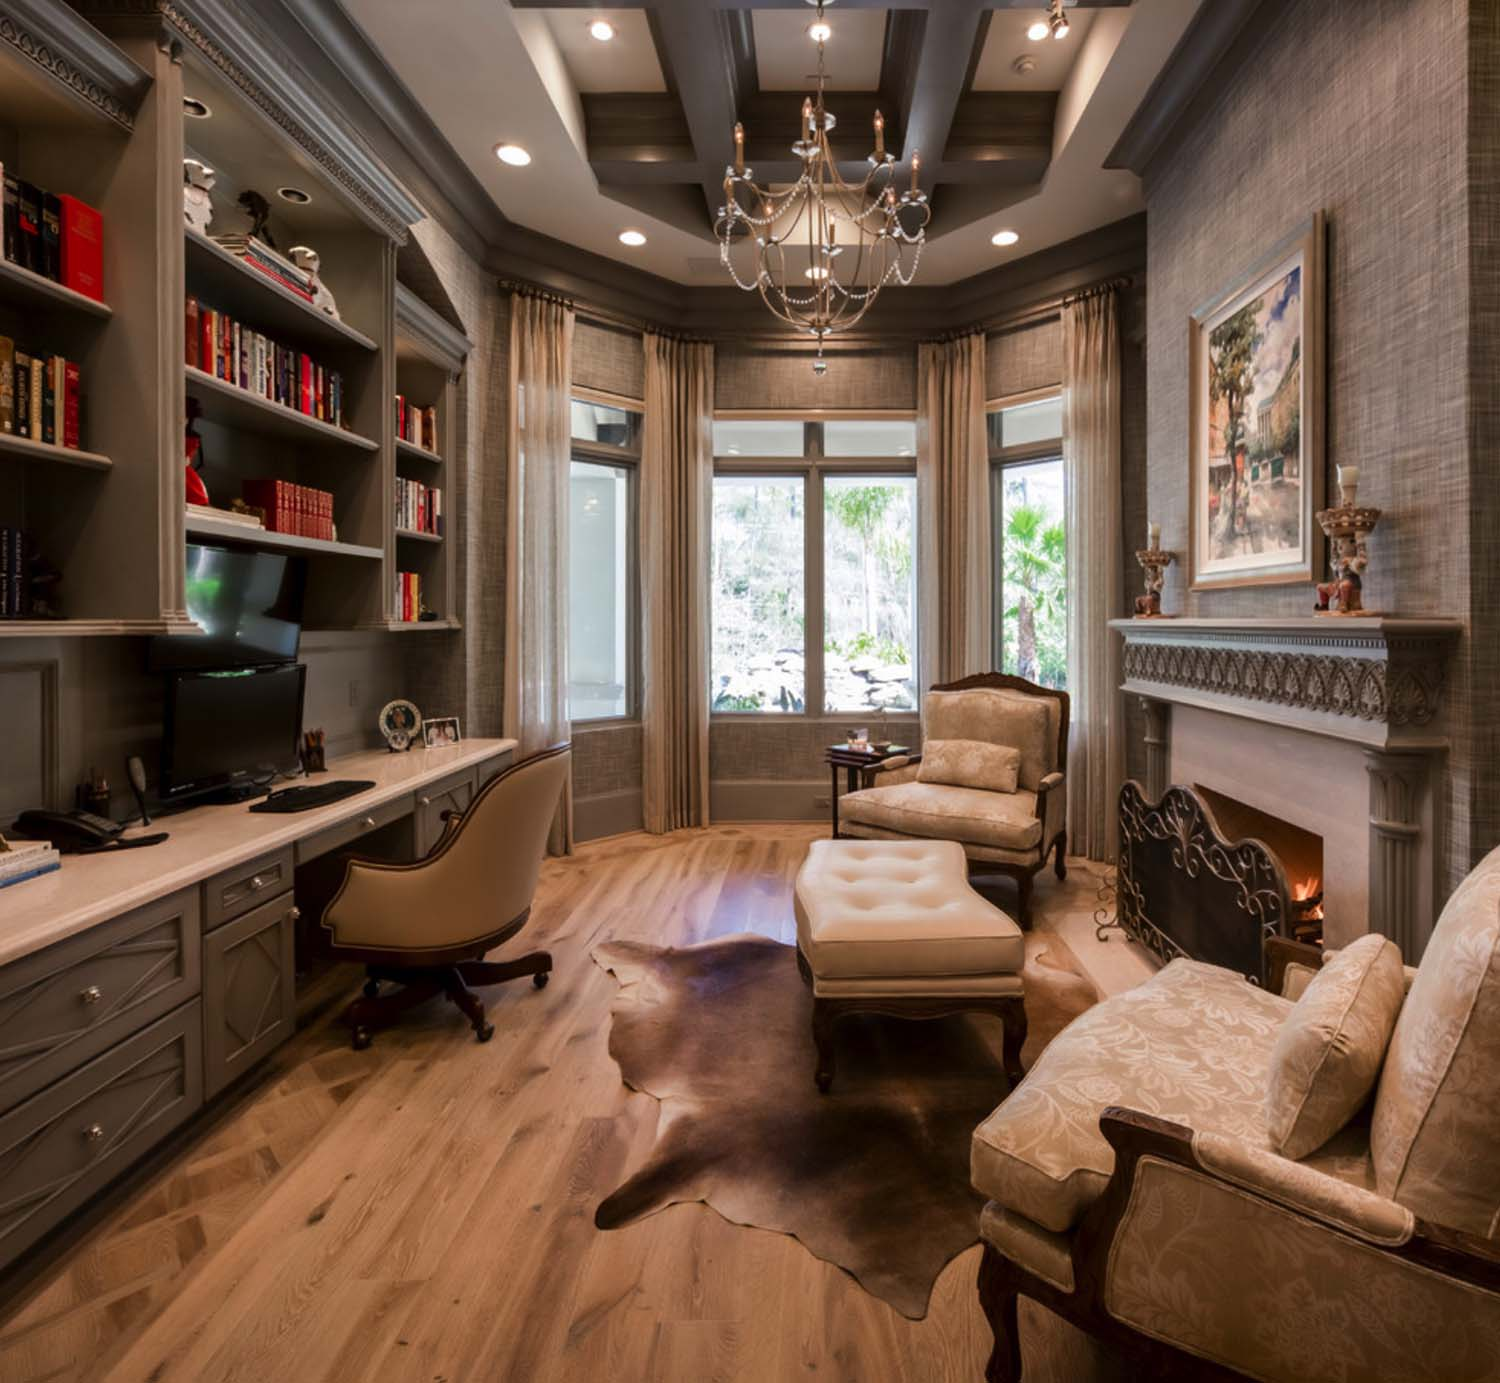 Mid century home office with elegant cowhide before the hearth